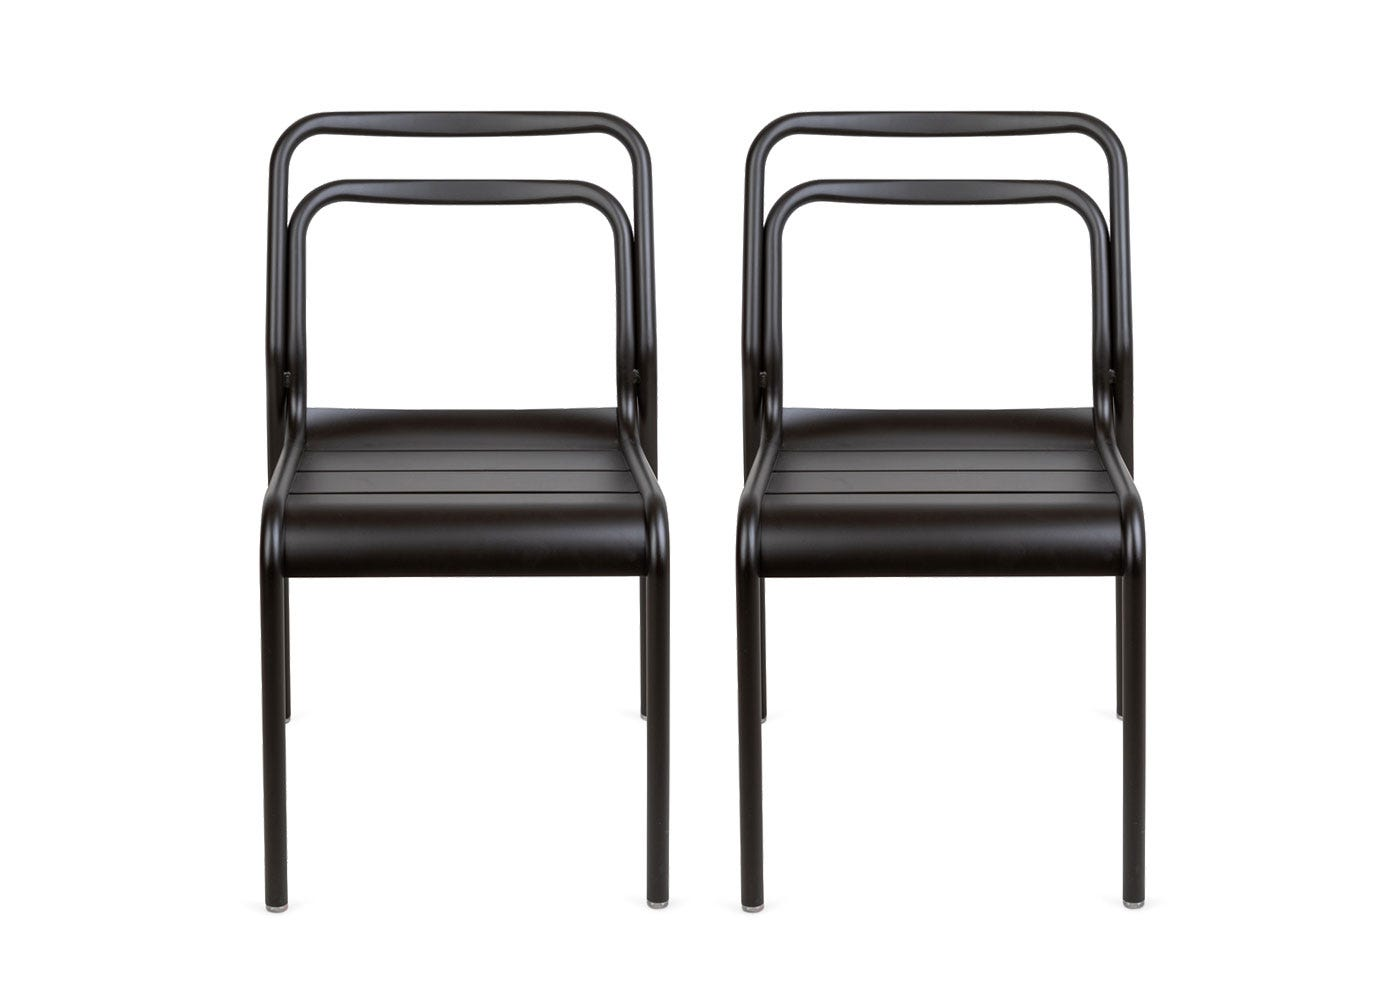 Petra pair of outdoor side chairs in dark grey.